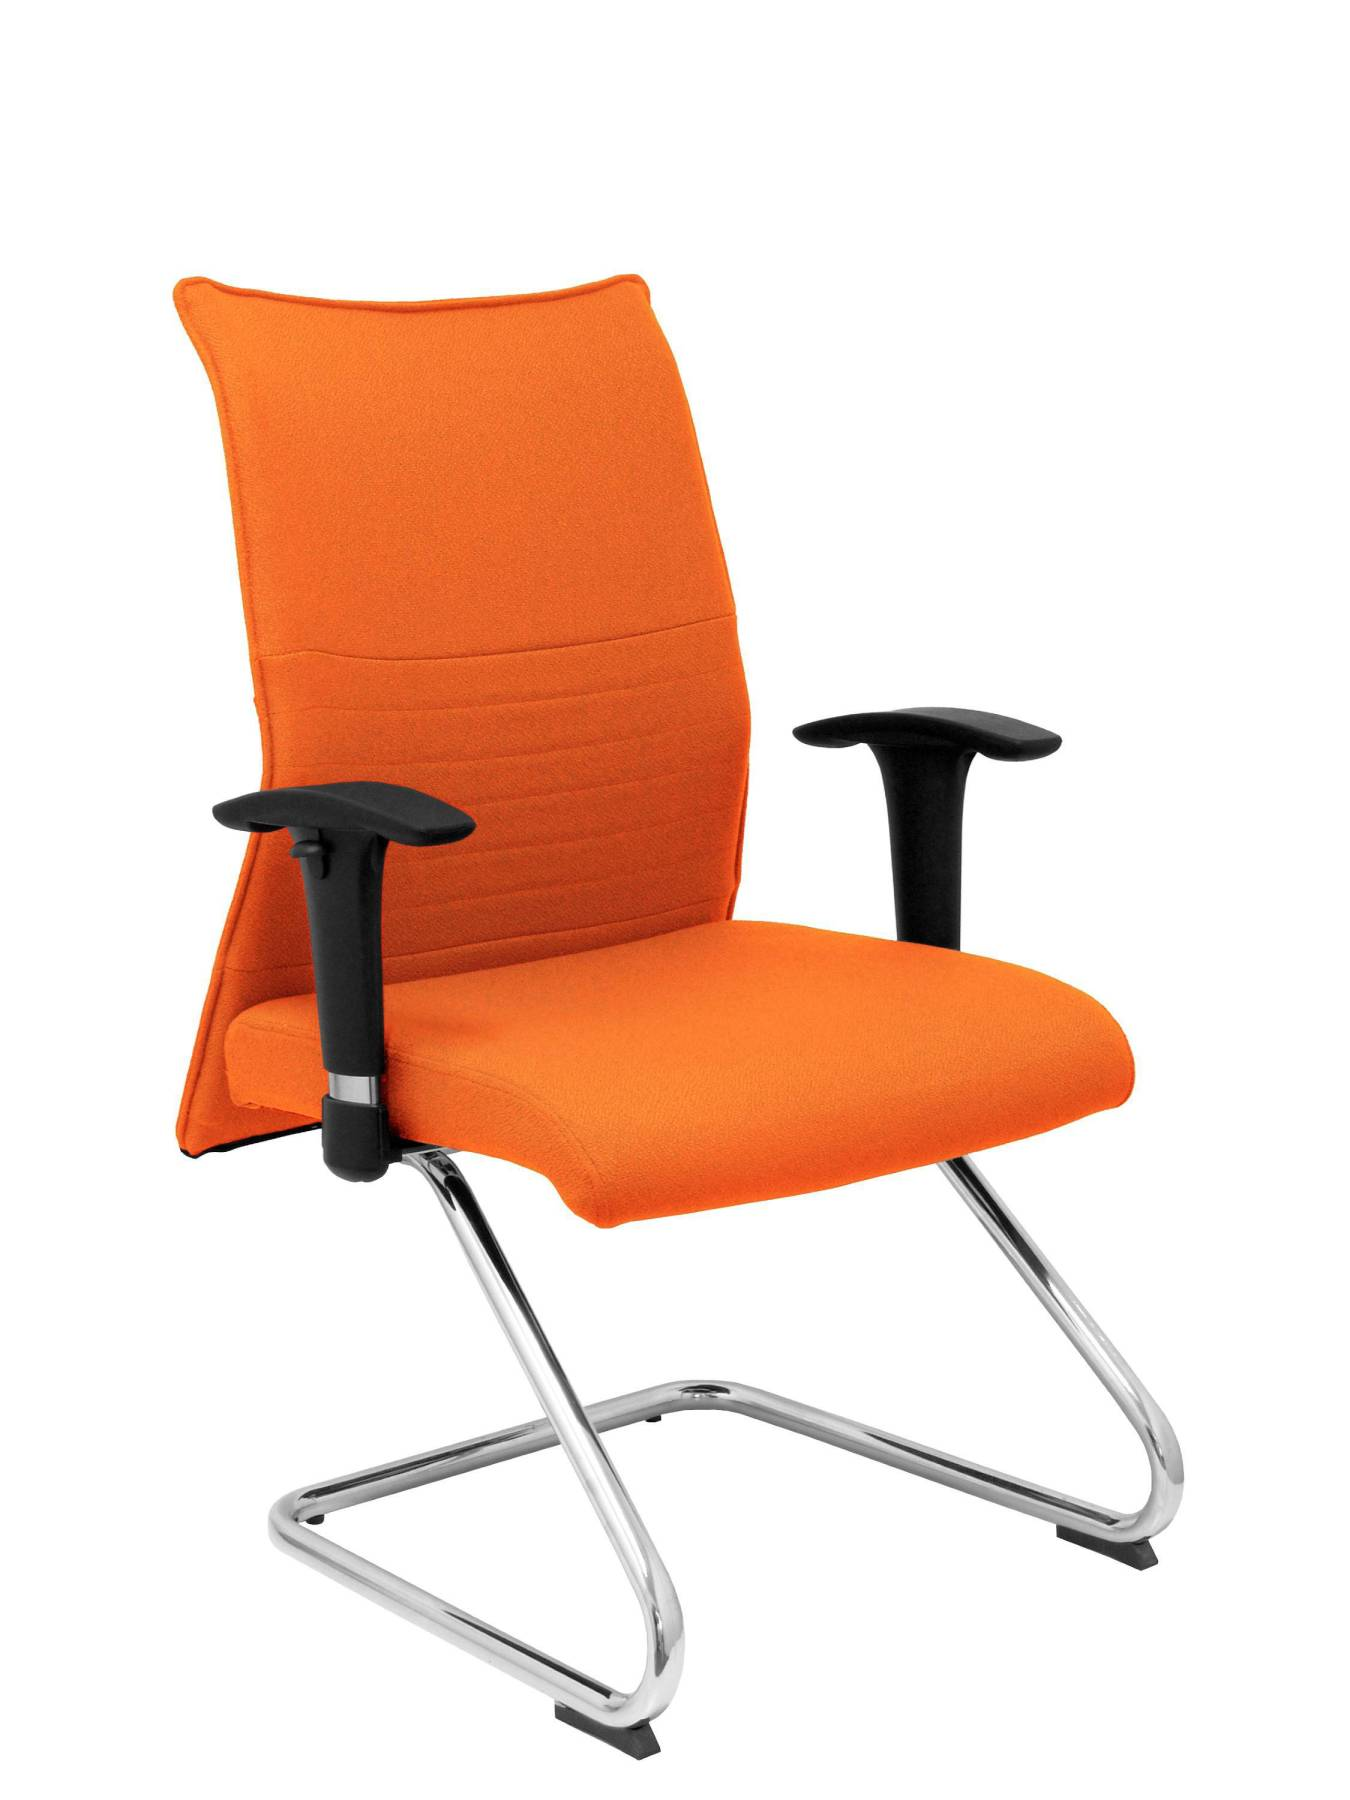 Armchair Confidante Ergonomic For Visits With Skate Chrome Up Seat And Backstop Upholstered In BALI Tissue Color Naranj